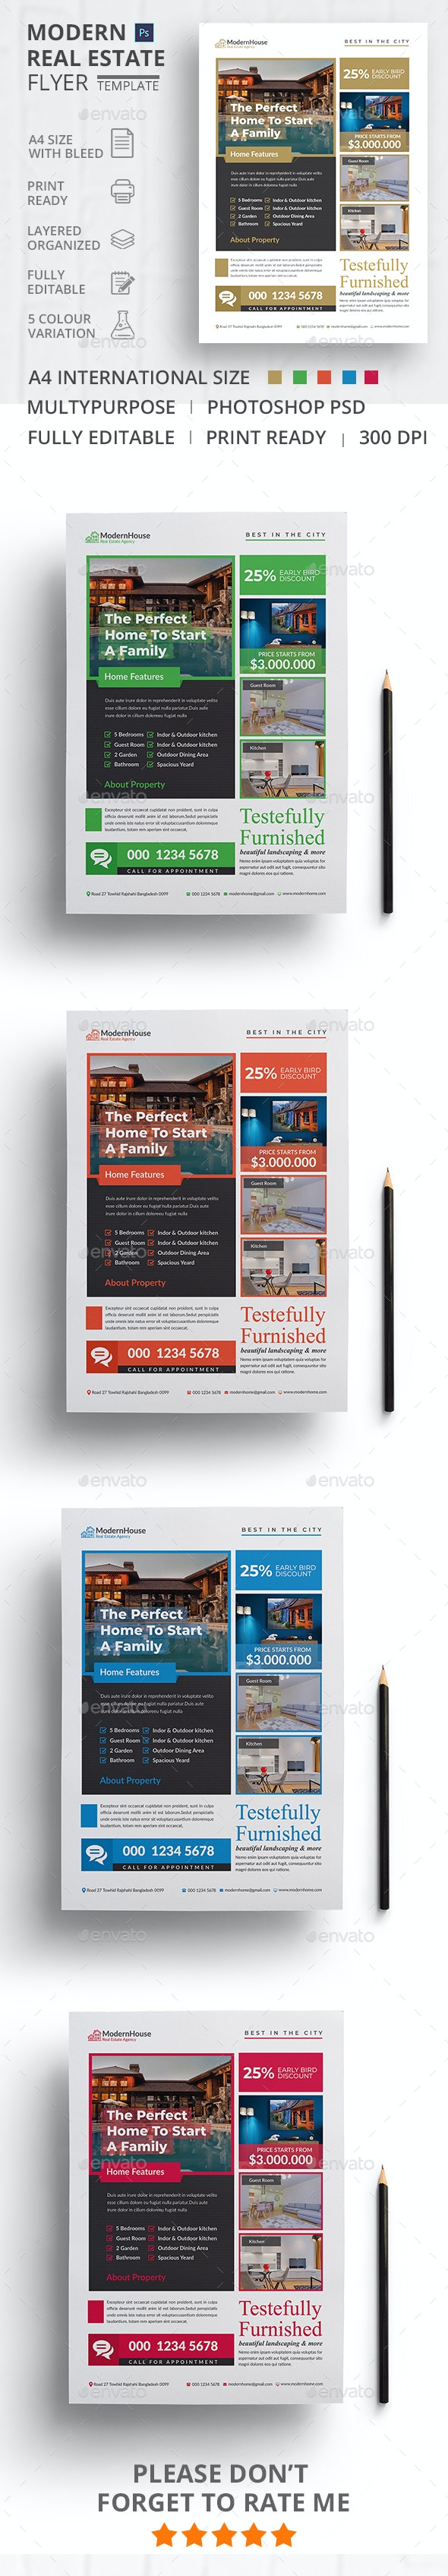 Modern Real Estate Flyer - Flyers Print Templates